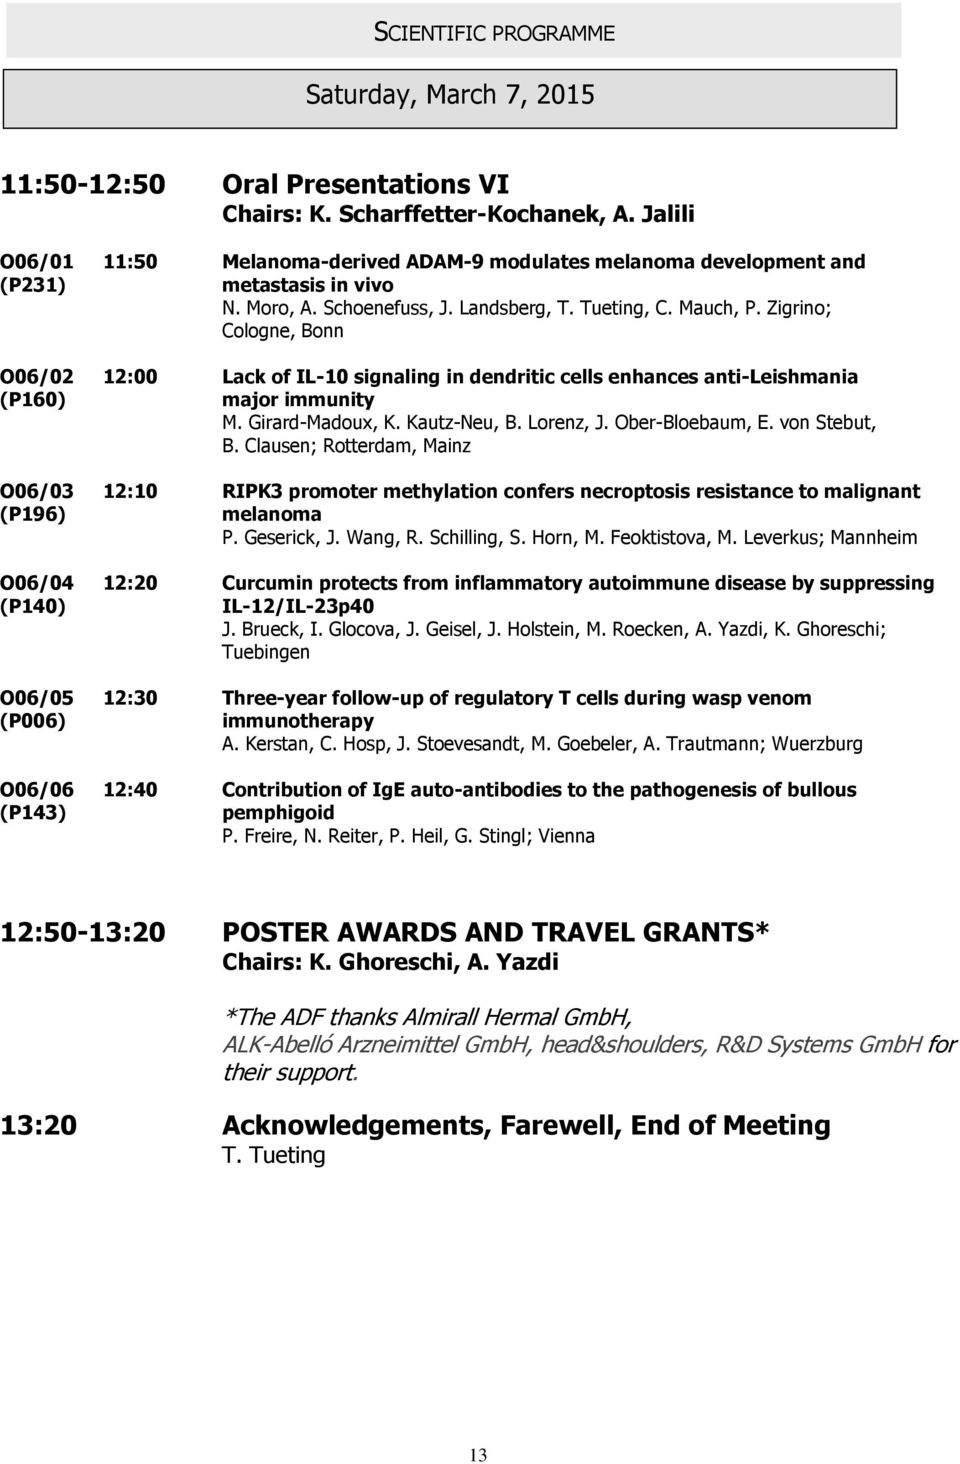 Zigrino; Cologne, Bonn O06/02 12:00 Lack of IL-10 signaling in dendritic cells enhances anti-leishmania (P160) major immunity M. Girard-Madoux, K. Kautz-Neu, B. Lorenz, J. Ober-Bloebaum, E.